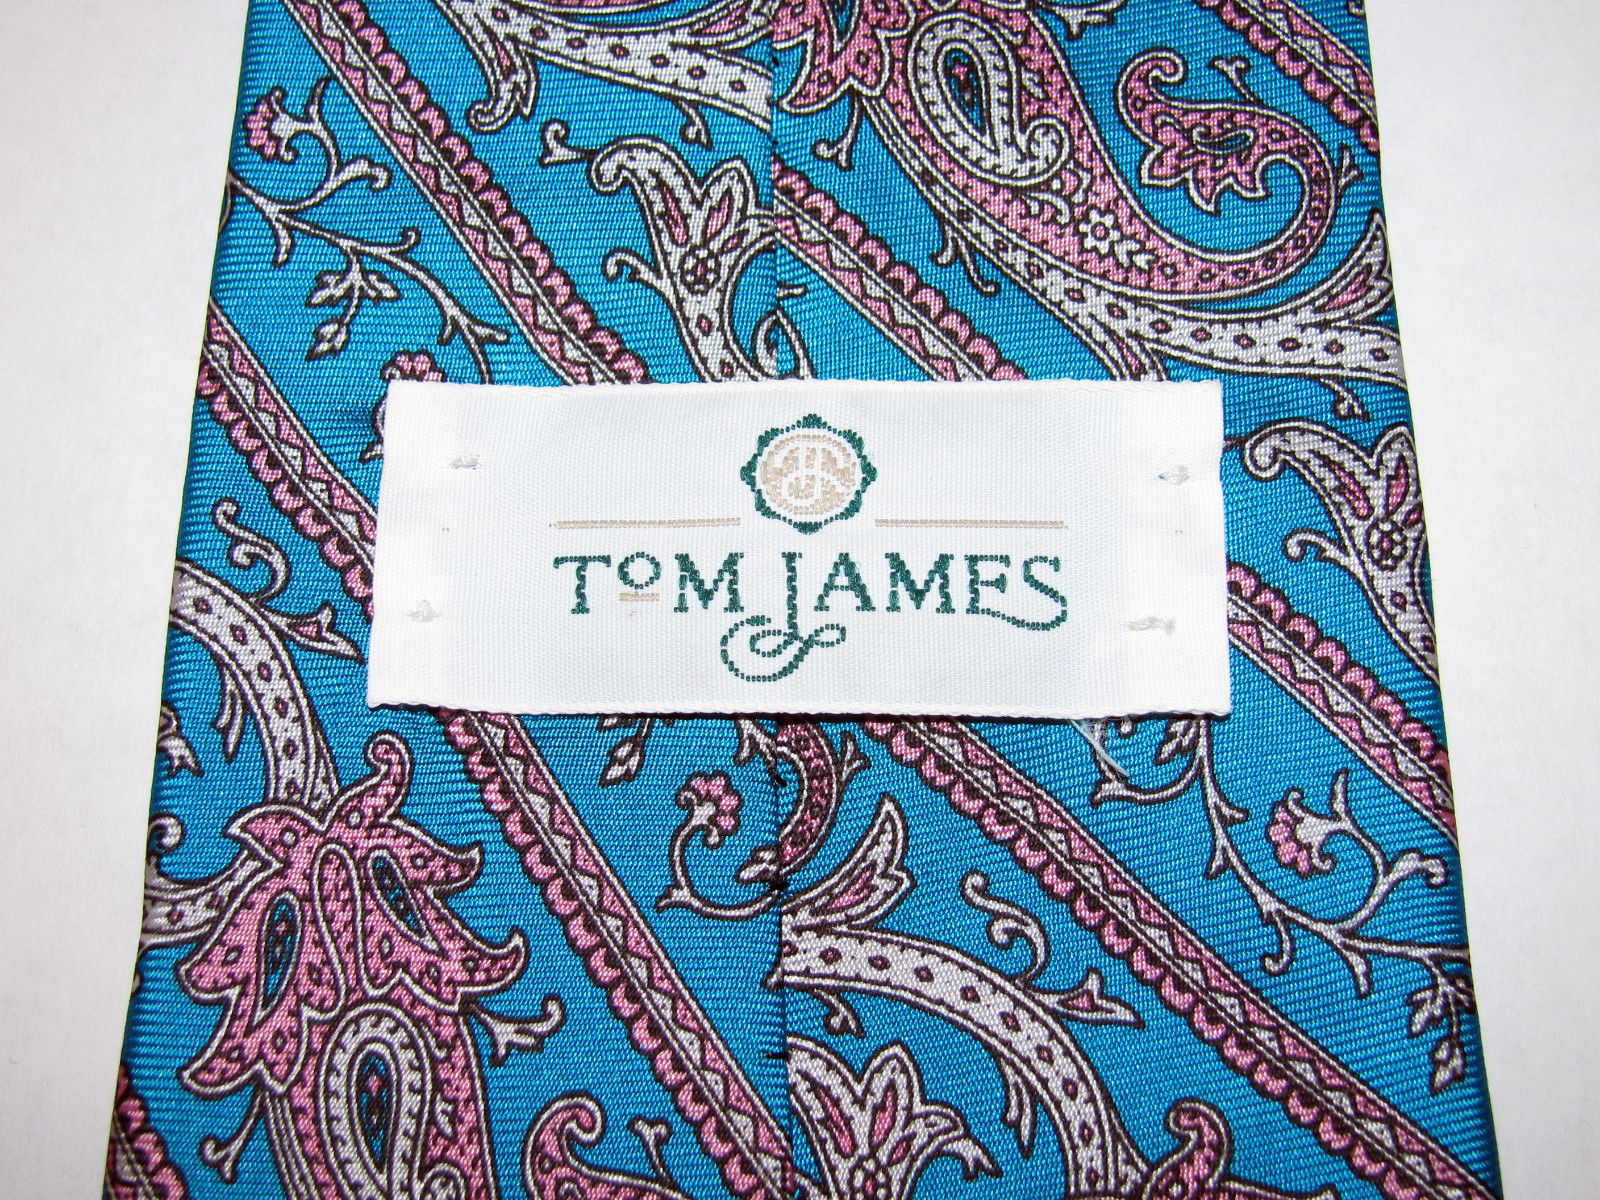 Vintage Tom James Turquoise Blue Green Paisley Silk Necktie Made in USA image 4